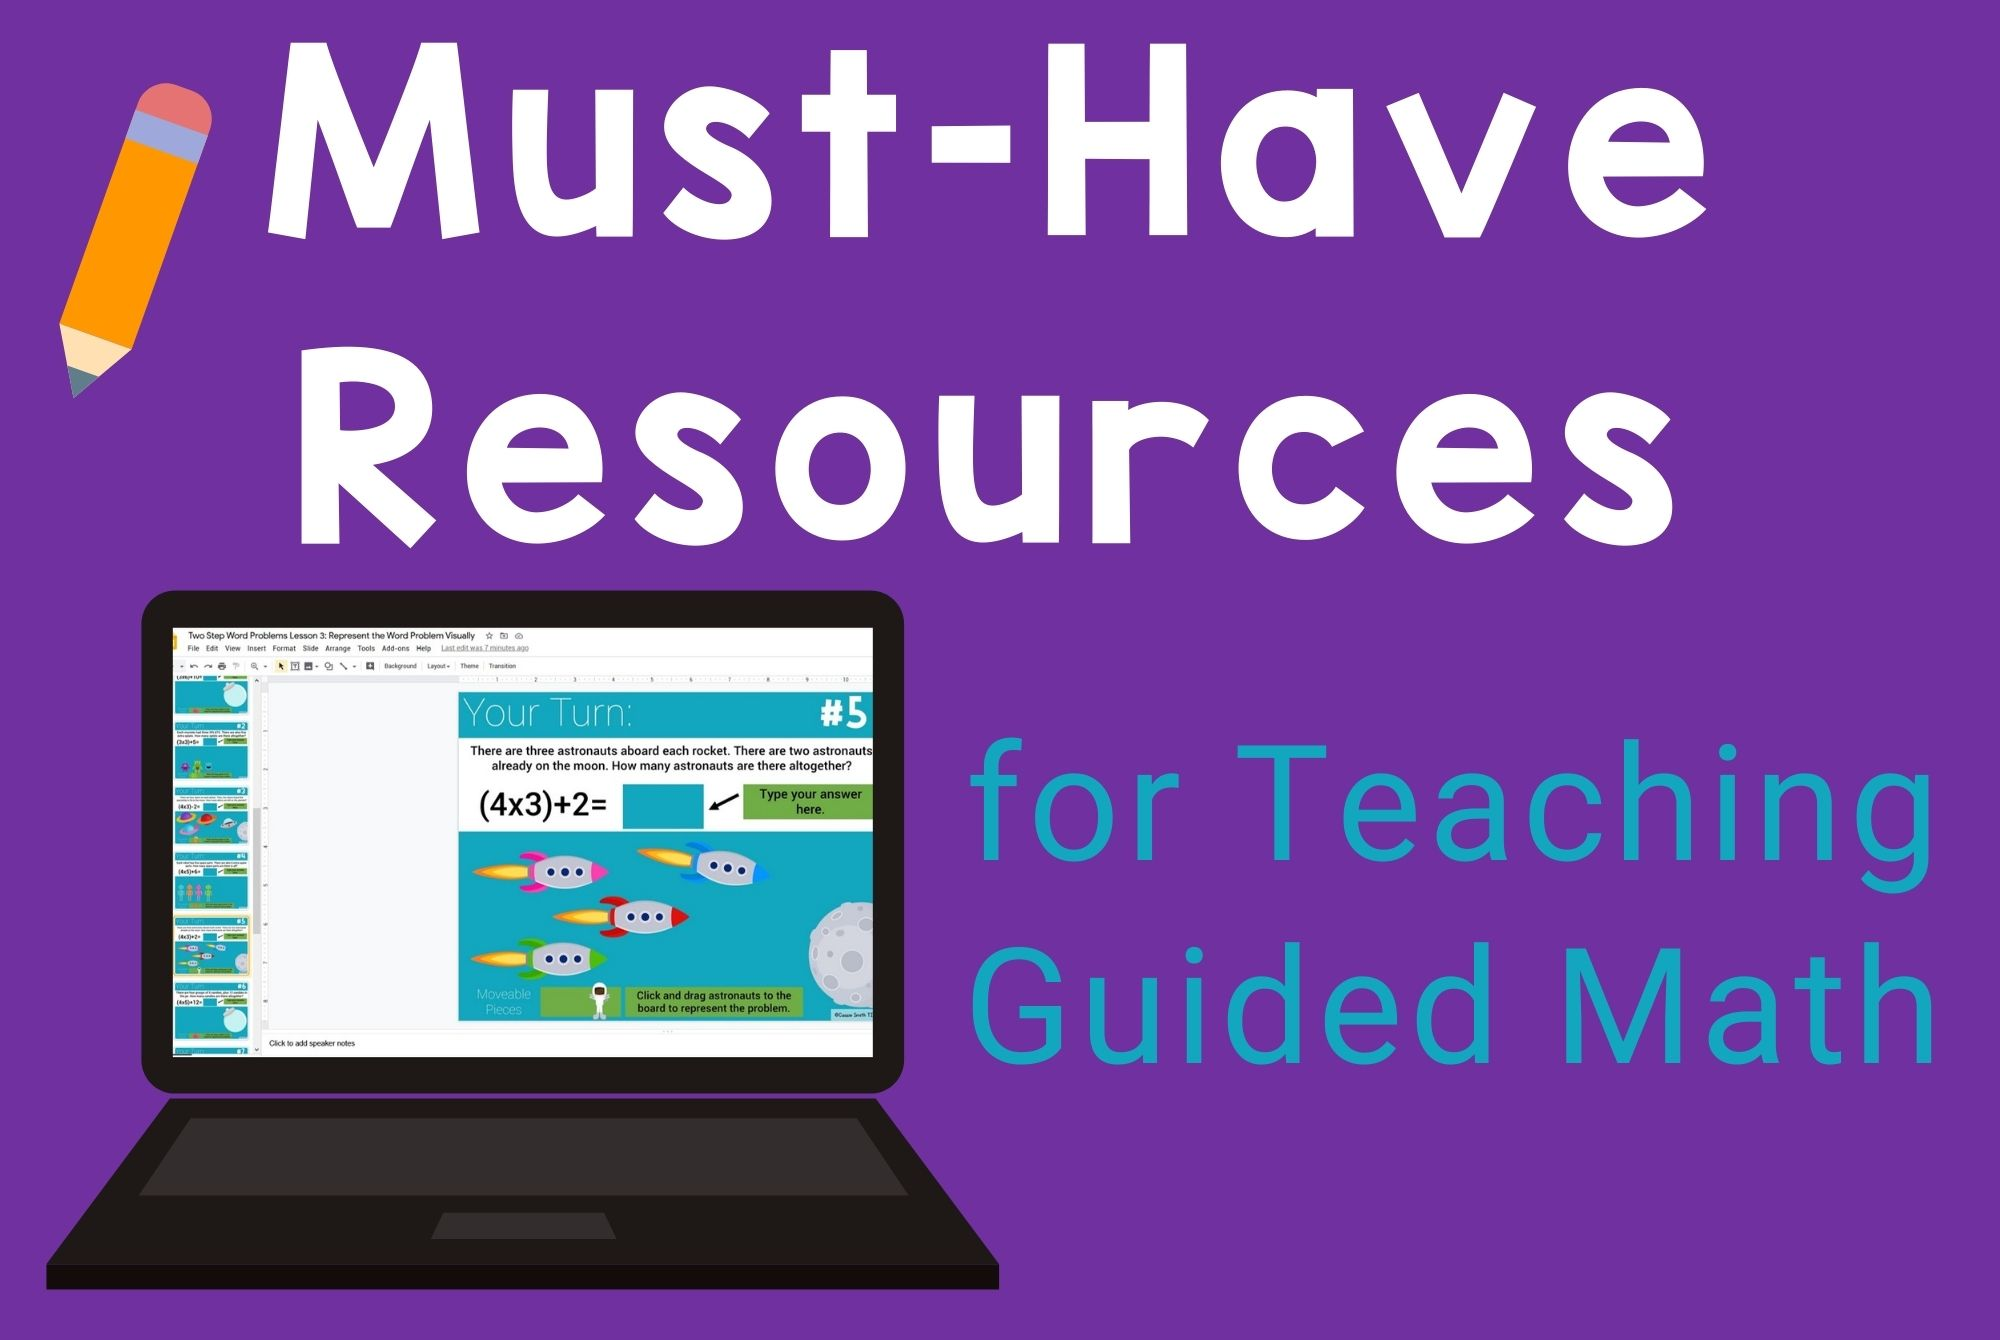 Must Have Resources for Teaching Guided Math